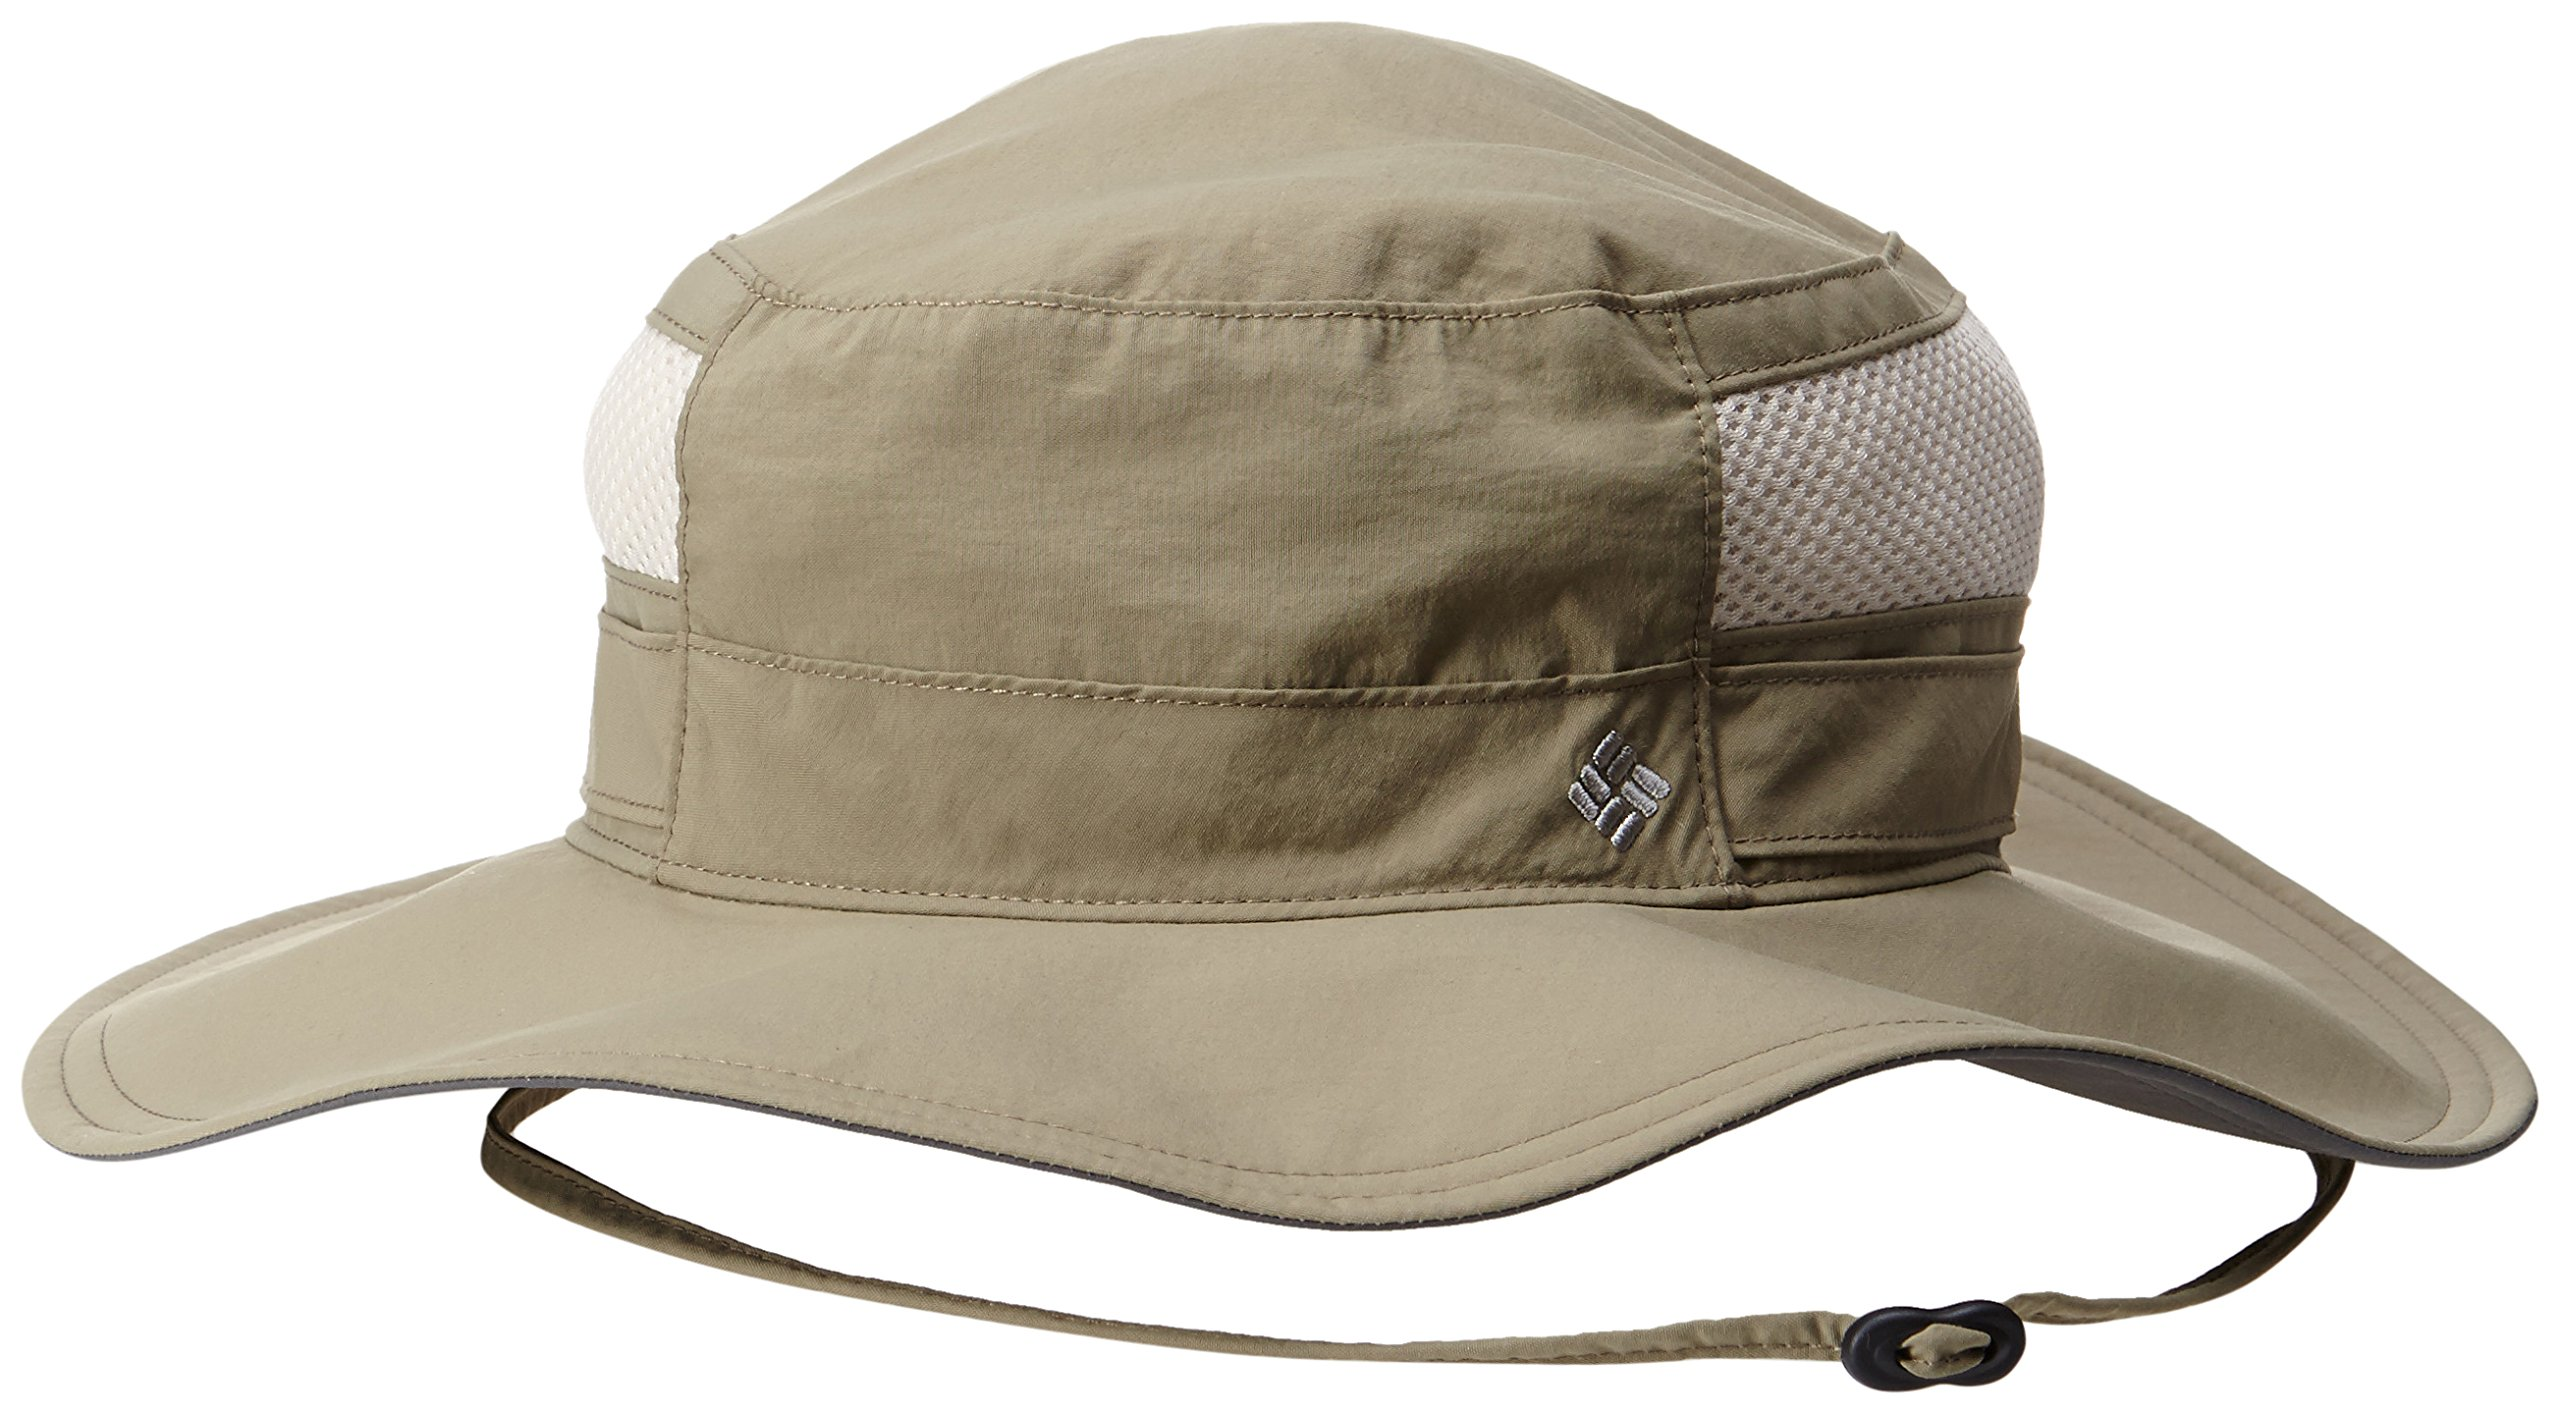 Columbia Bora Bora Booney II Sun Hats, Sage, One Size by Columbia